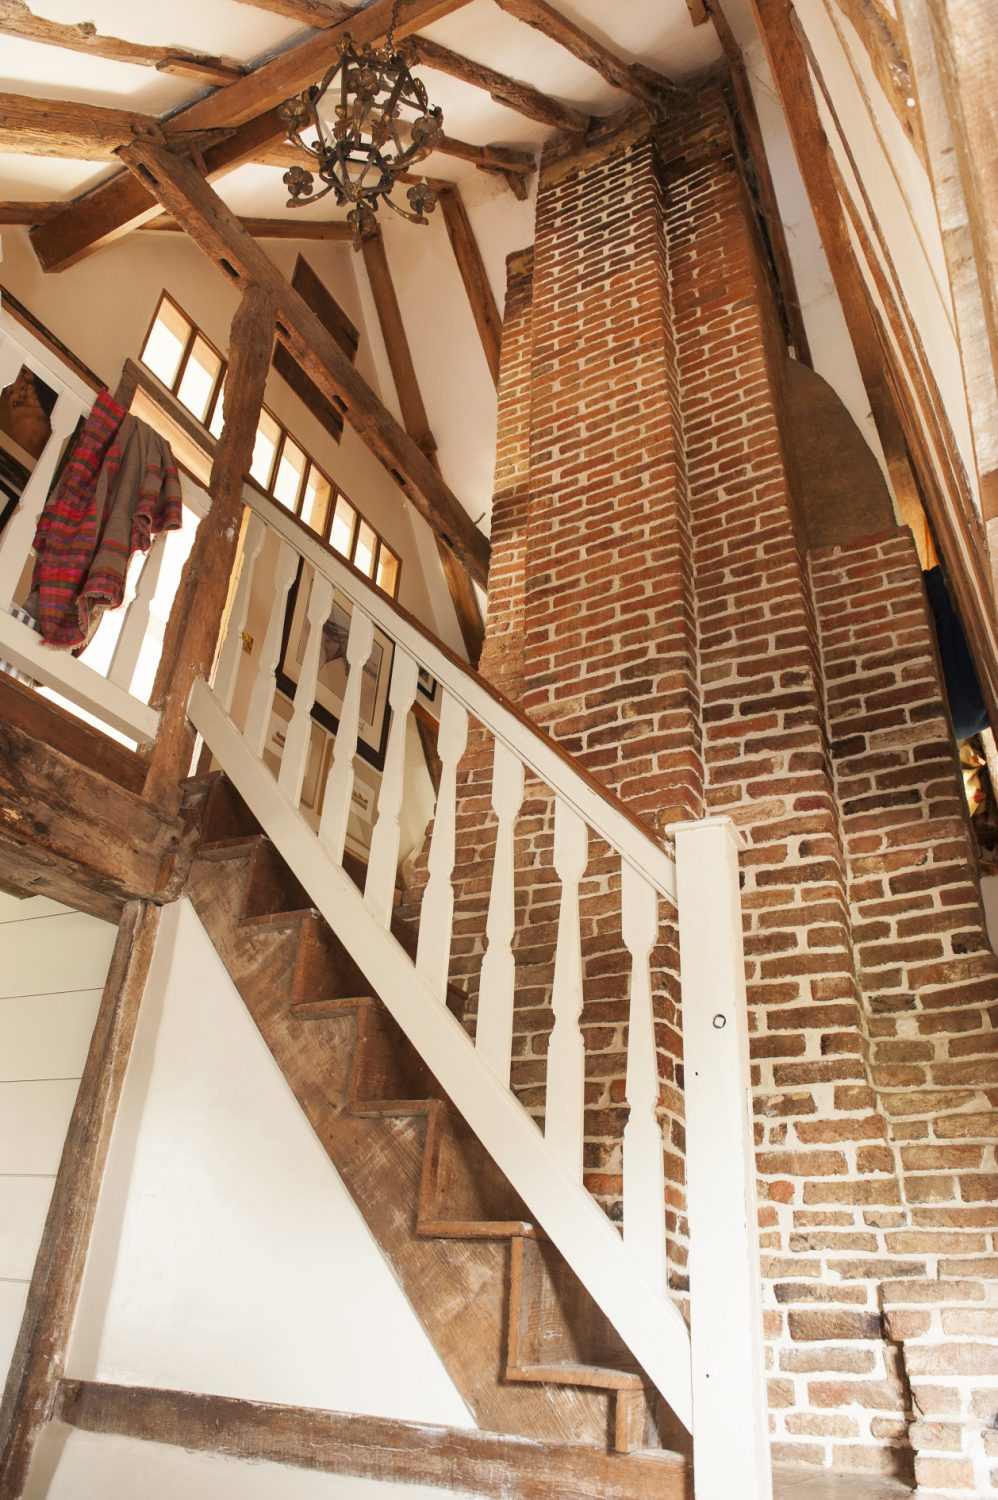 Despite its ancient origins, the house has been sensitively updated over the years. Fans of classic Wealden buildings are in for a treat, as the eye is led upwards by the most enormous chimney of local brick and lime mortar which juts into the roof space